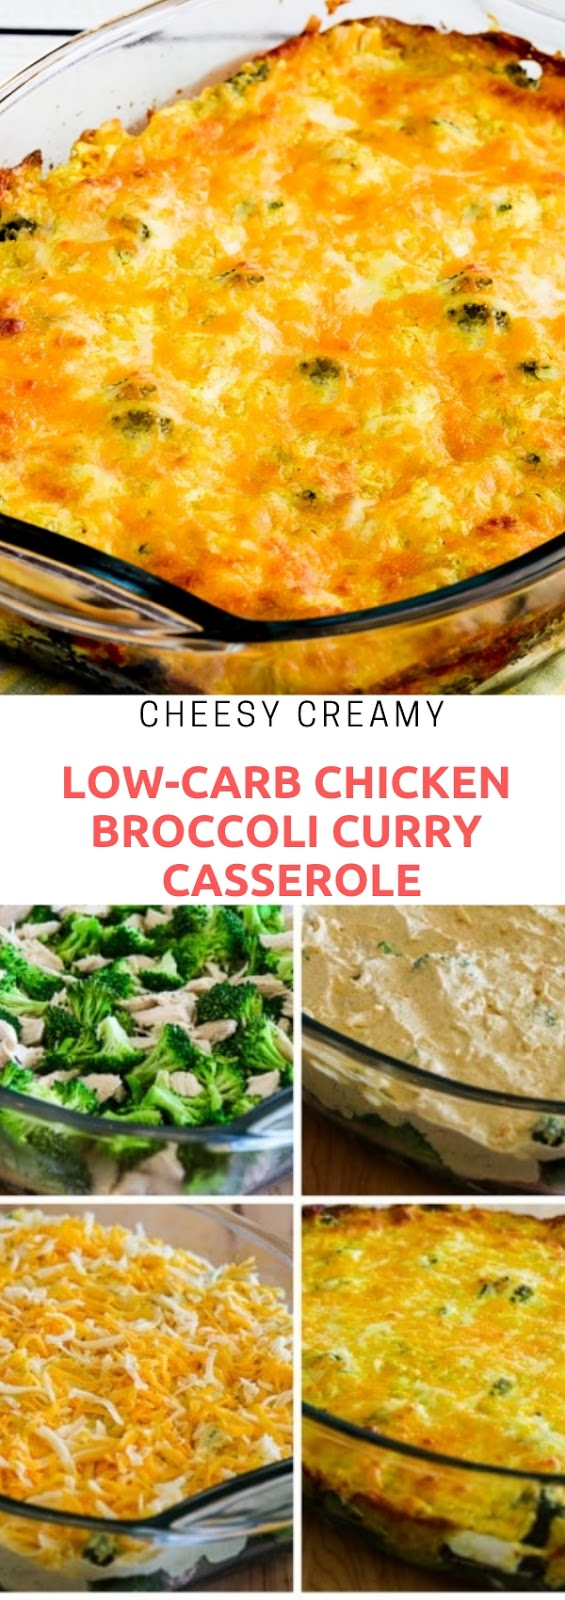 CHEESY CREAMY LOW-CARB CHICKEN BROCCOLI CURRY CASSEROLE #cheesy #creamy #lowarb #chicken #broccoli #curry #casserole #vegan